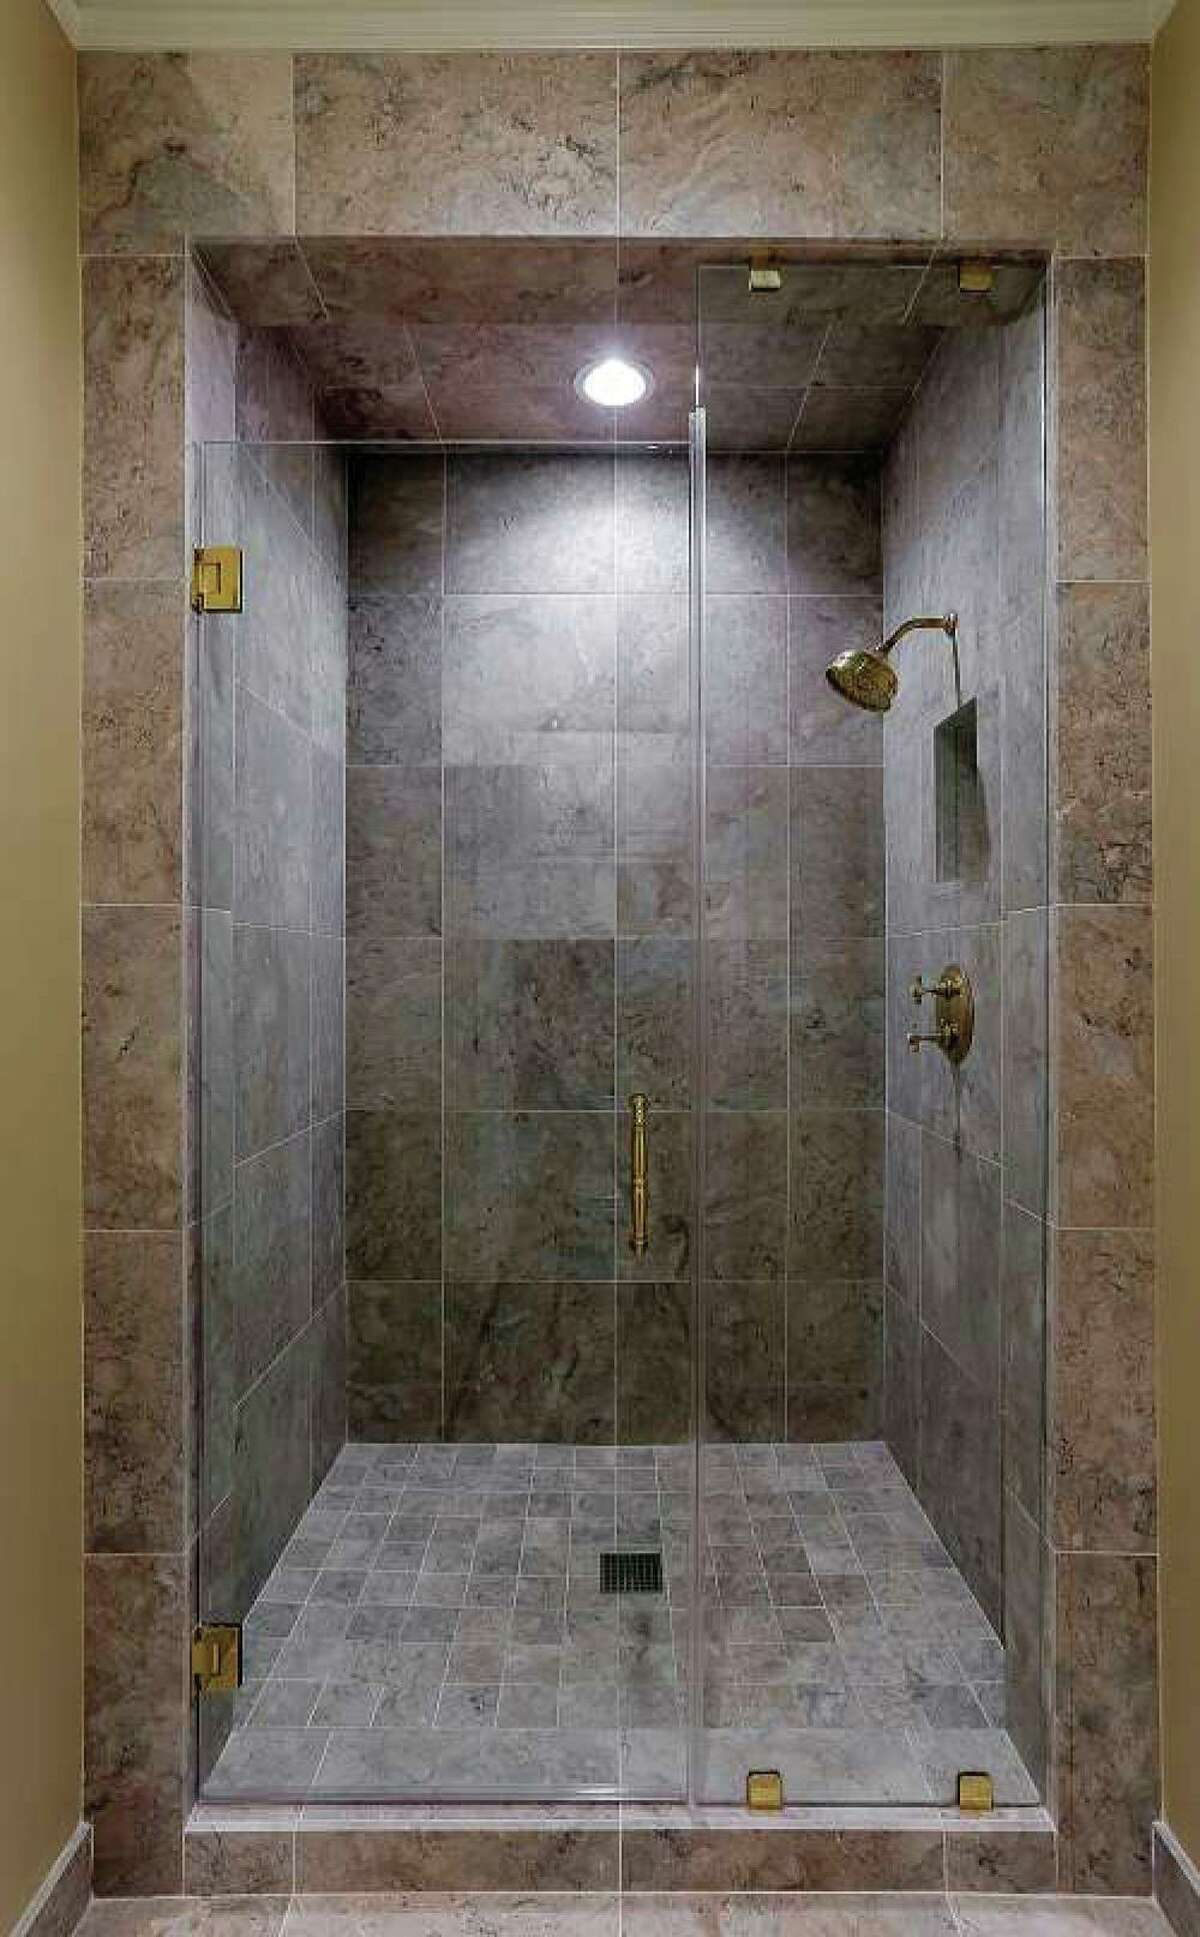 This is a frameless glass shower enclosure in neutral colors. / Courtesy of Craftsmanship By John